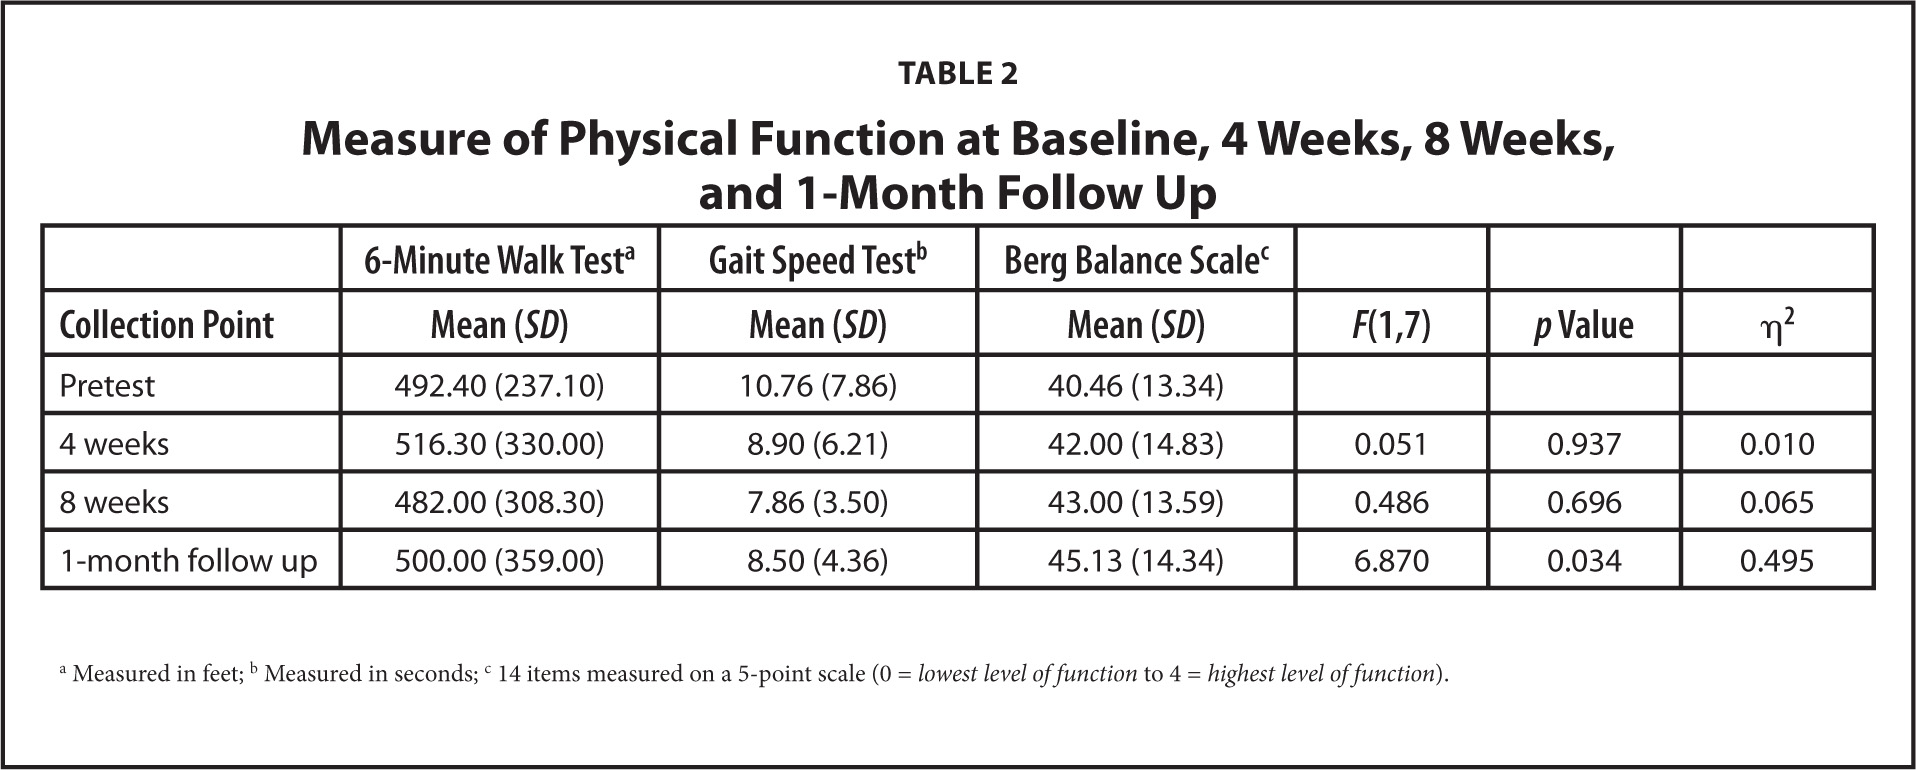 Measure of Physical Function at Baseline, 4 Weeks, 8 Weeks, and 1-Month Follow Up